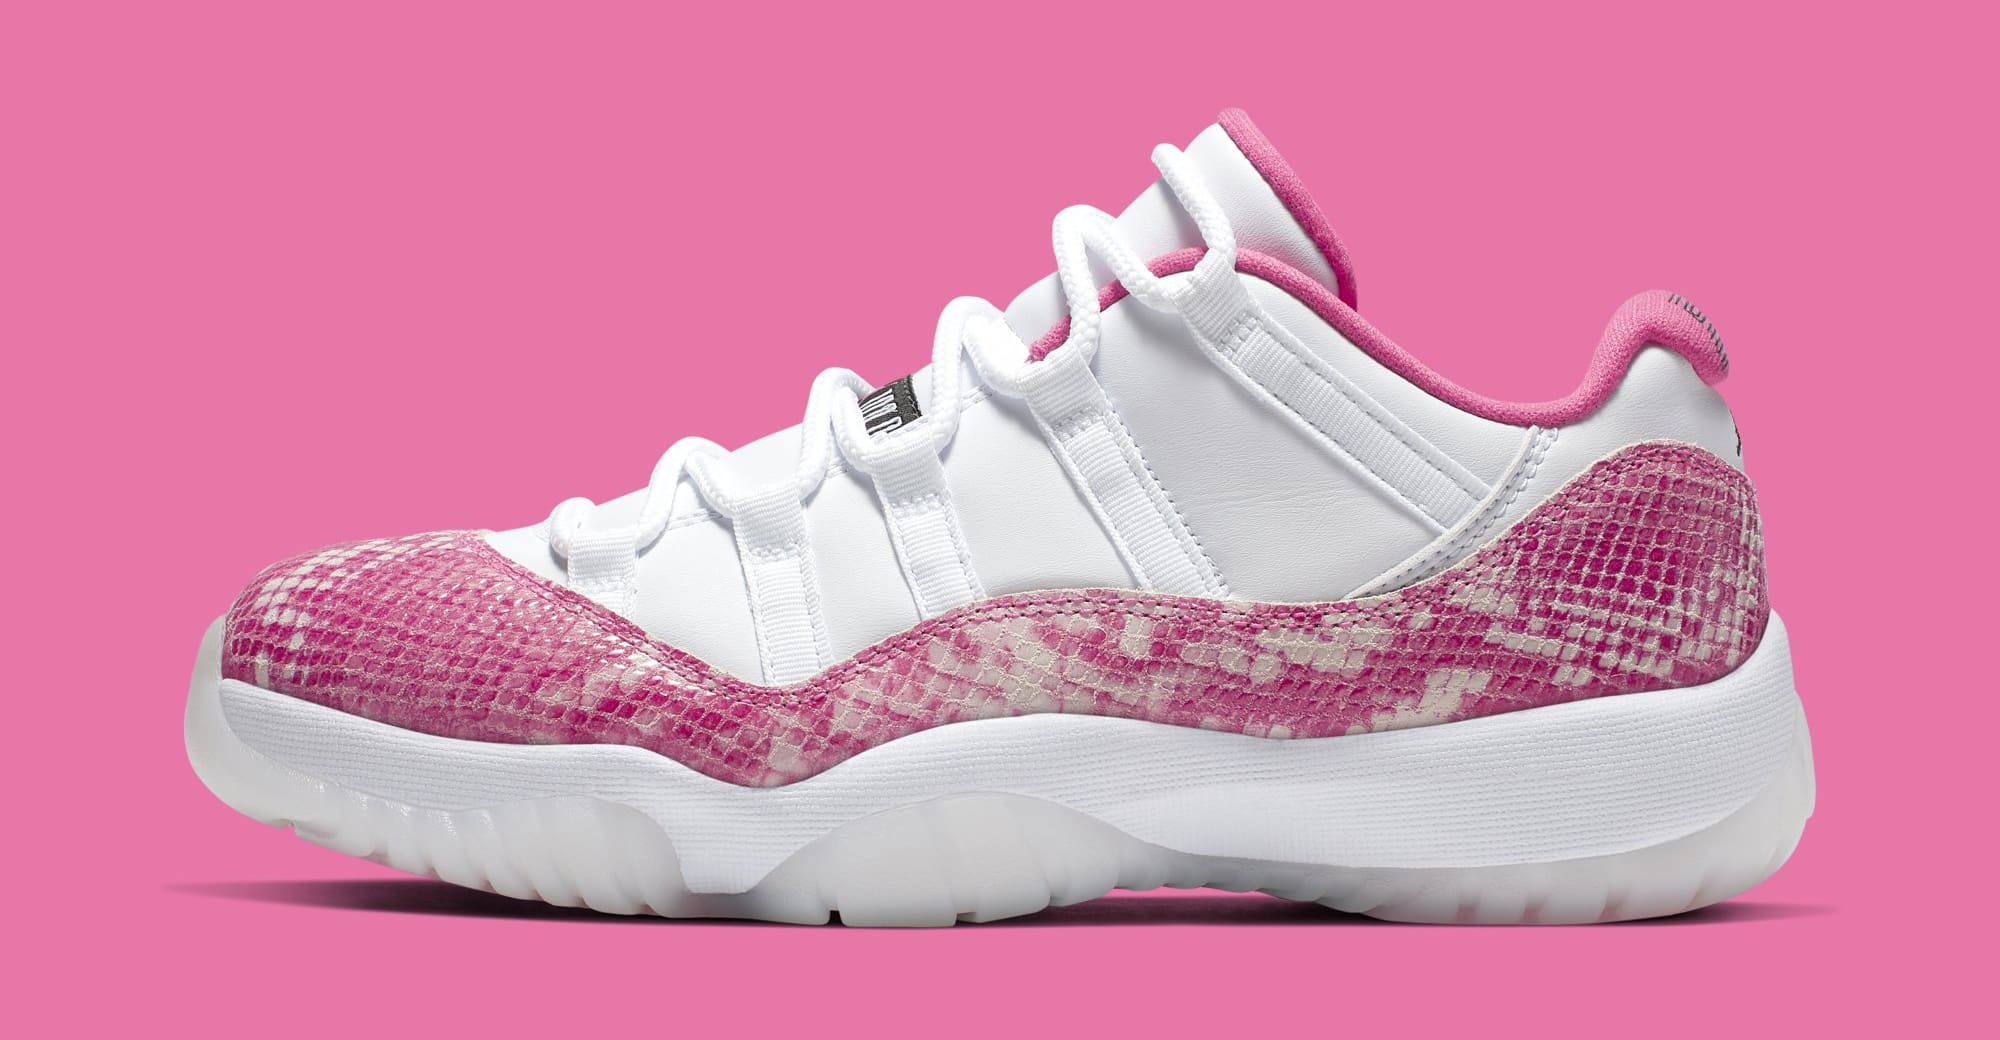 newest 68963 11665 Air Jordan 11 Low  Pink Snakeskin  AH7860-106 (Lateral)